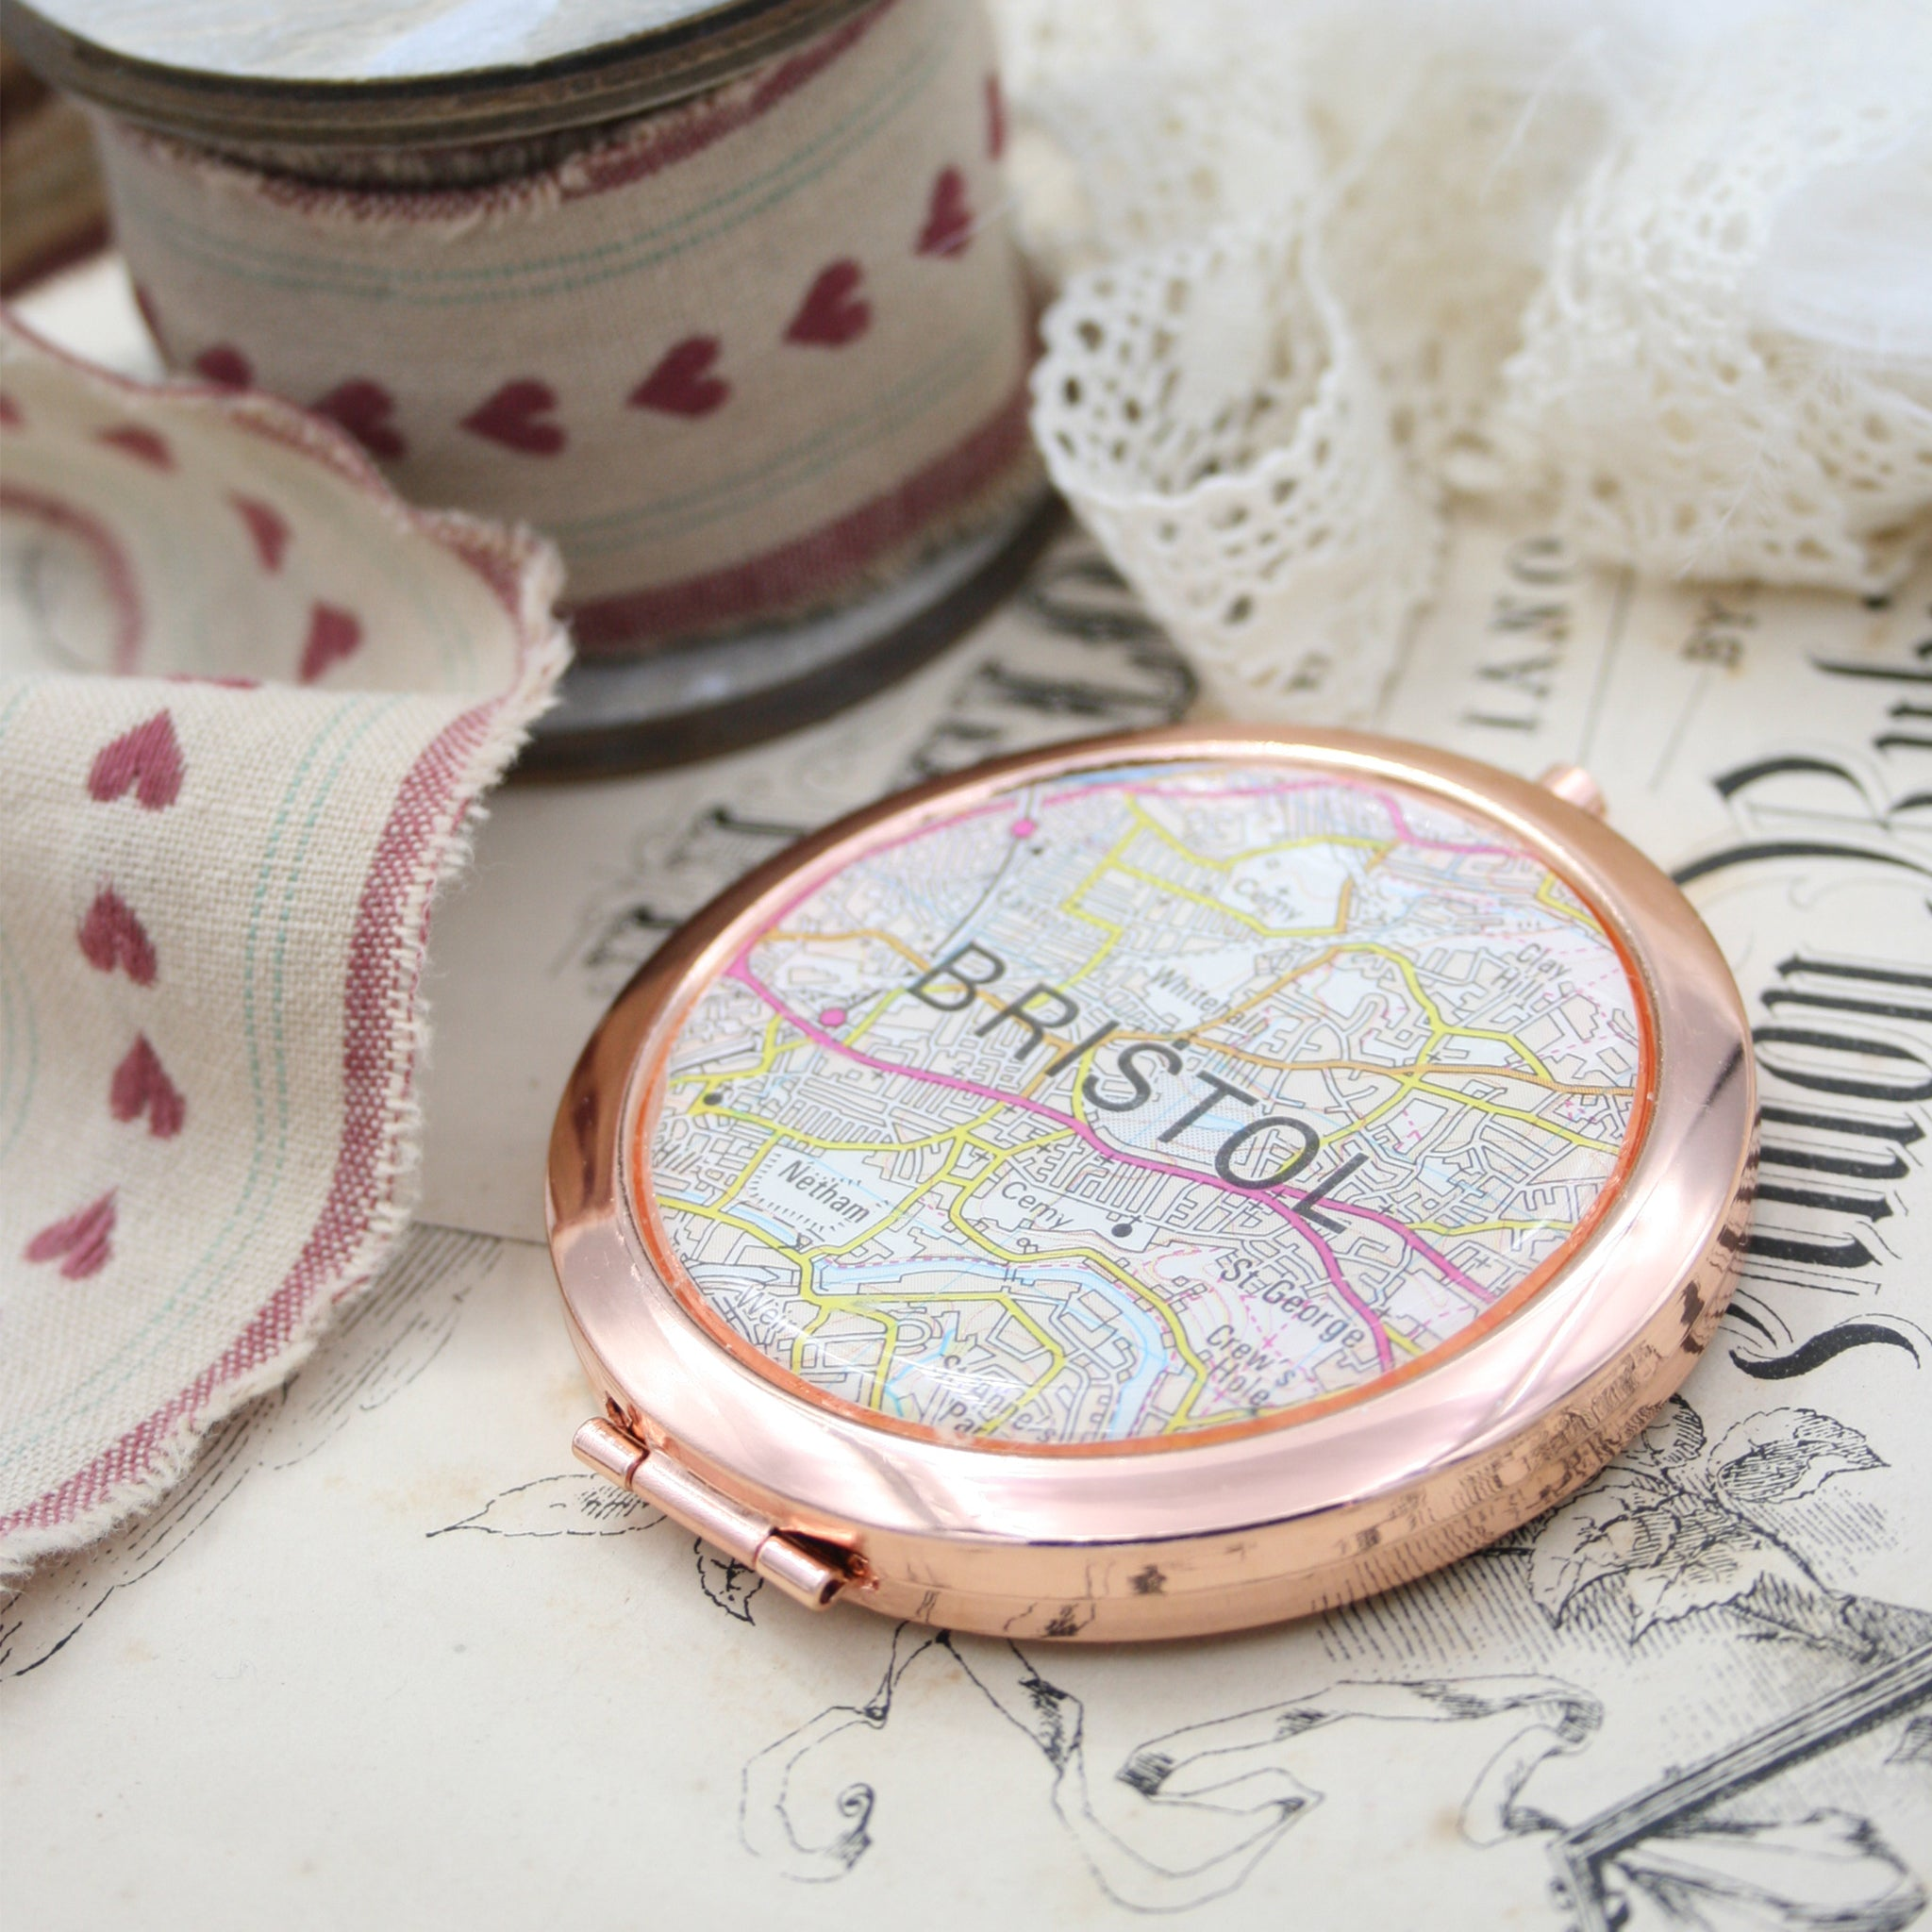 Personalised Compact Mirror in rose gold color featuring map of Bristol